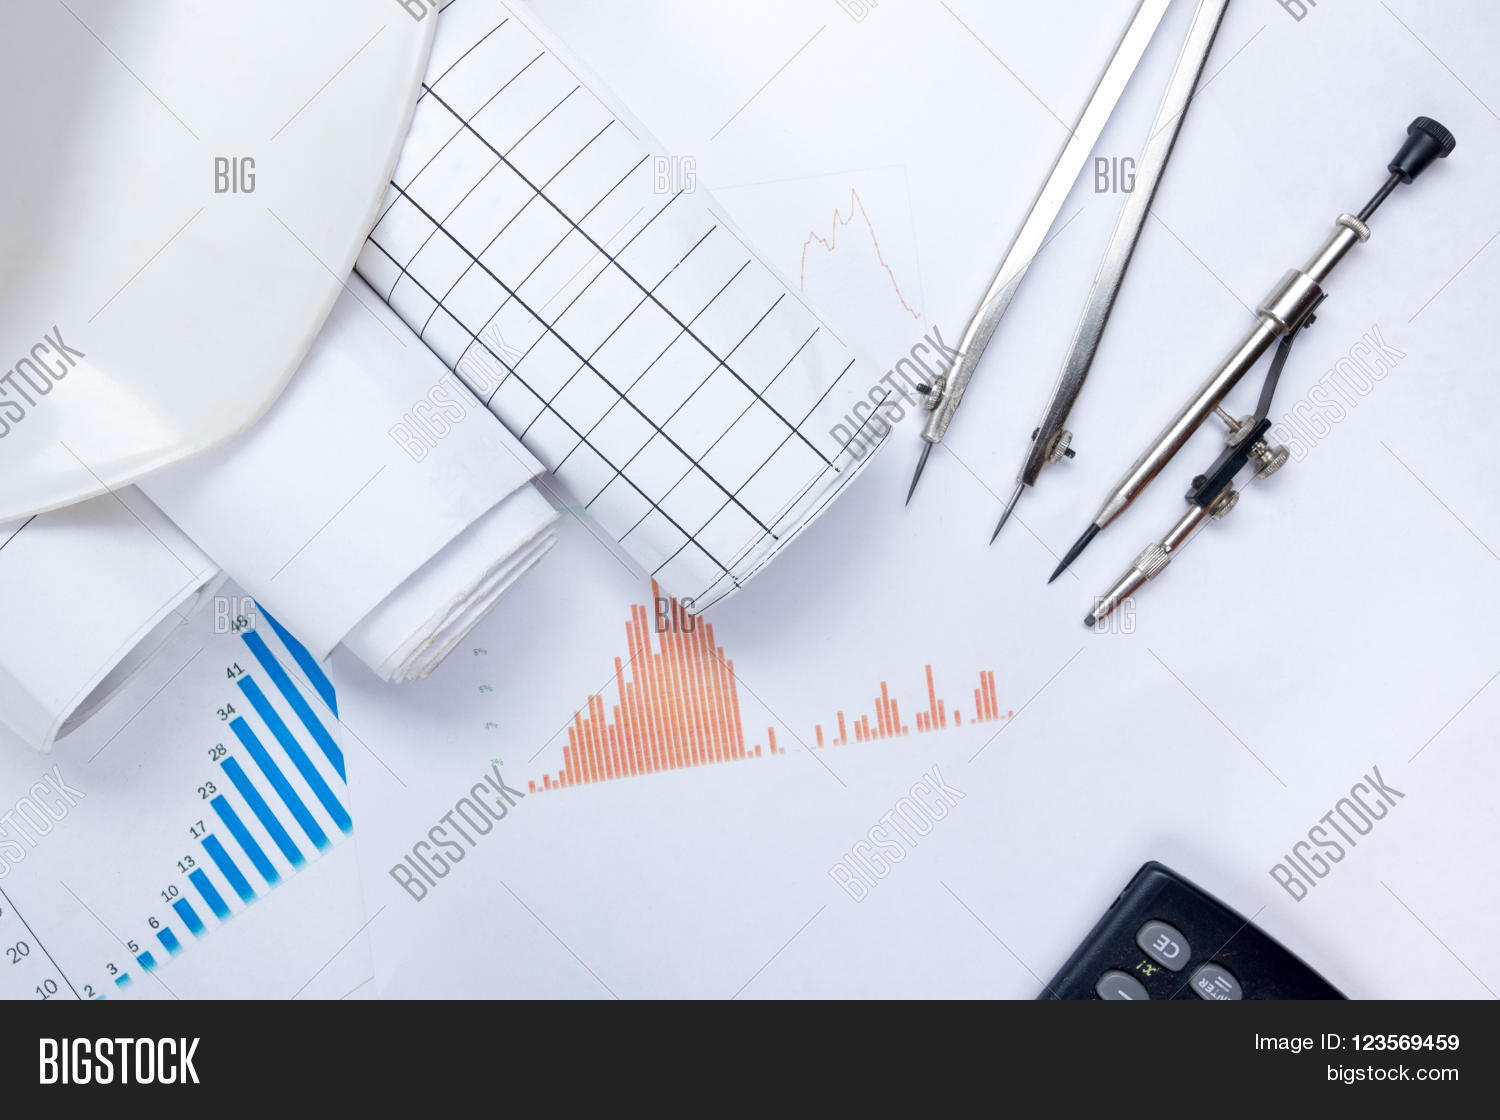 Architectural image photo free trial bigstock architectural blueprints blueprint rolls compass divider calculator white safety on graph paper malvernweather Gallery